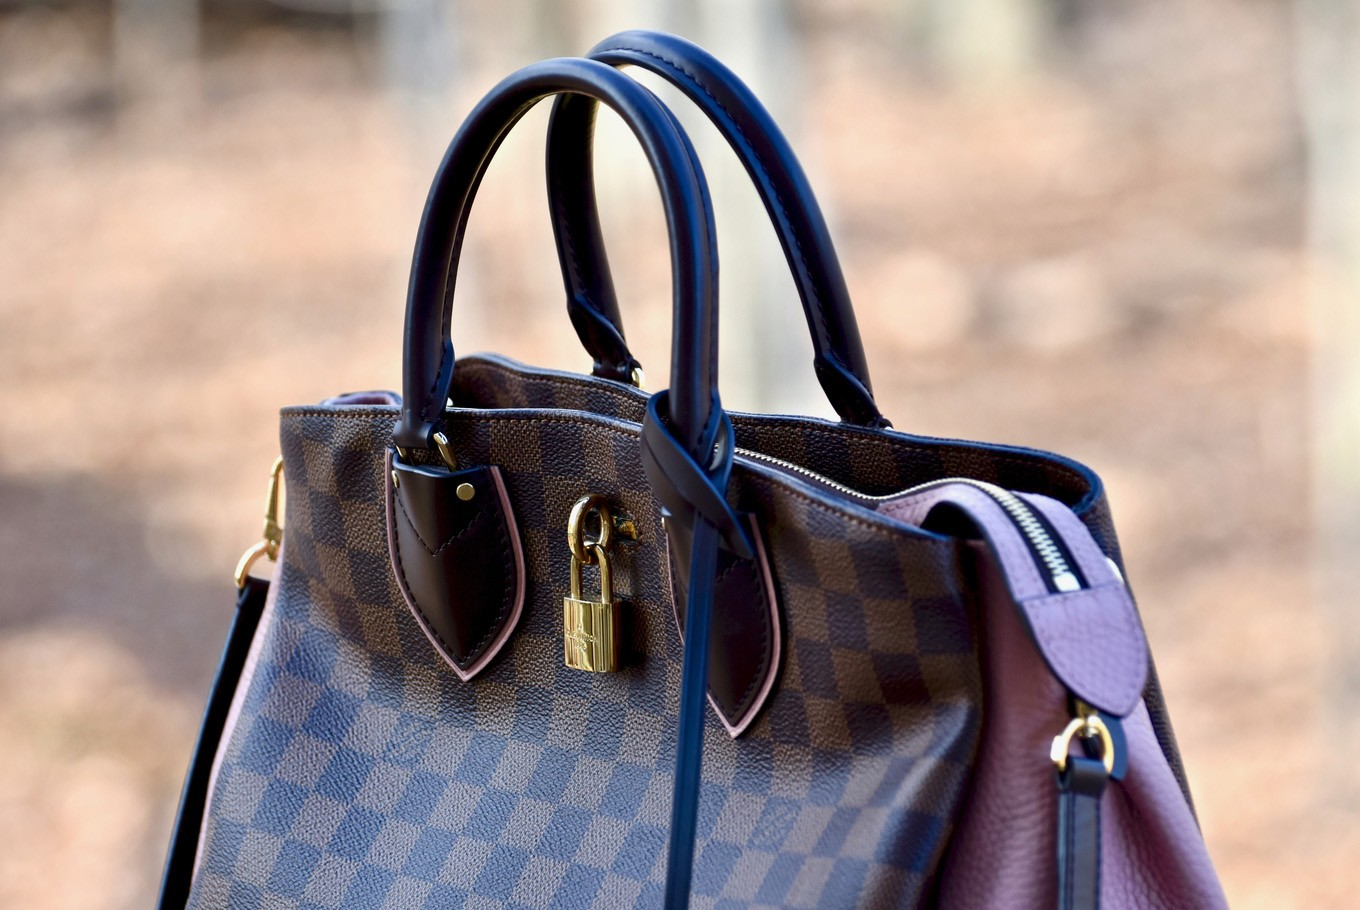 Used Louis Vuitton bags propel pawn-shop startup to IPO